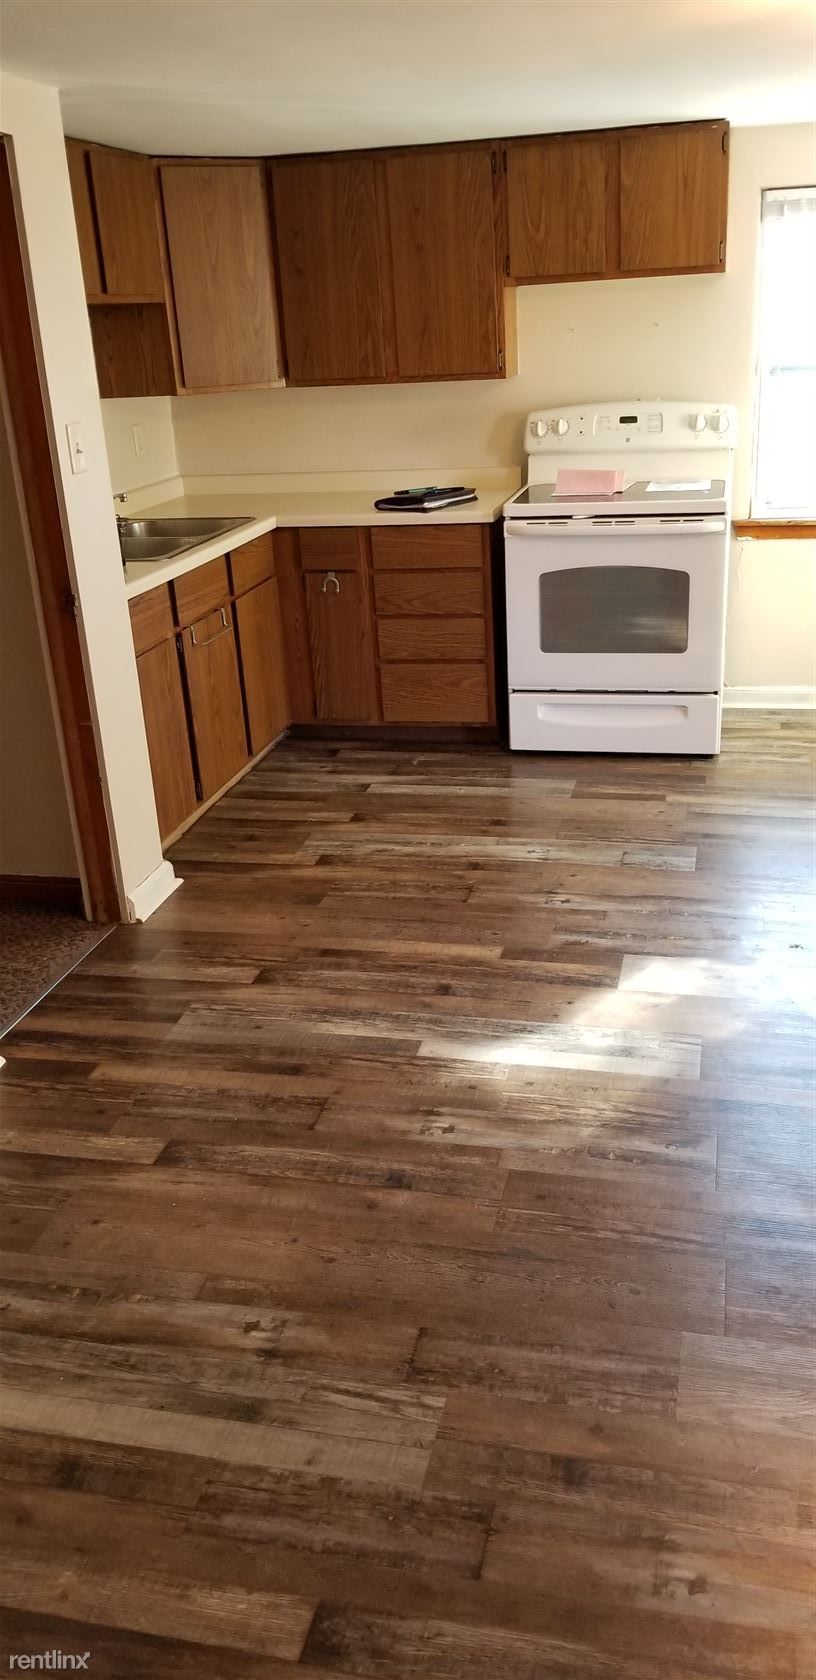 W229  N5151 Duplainville Rd - Upper, Pewaukee, WI - 875 USD/ month